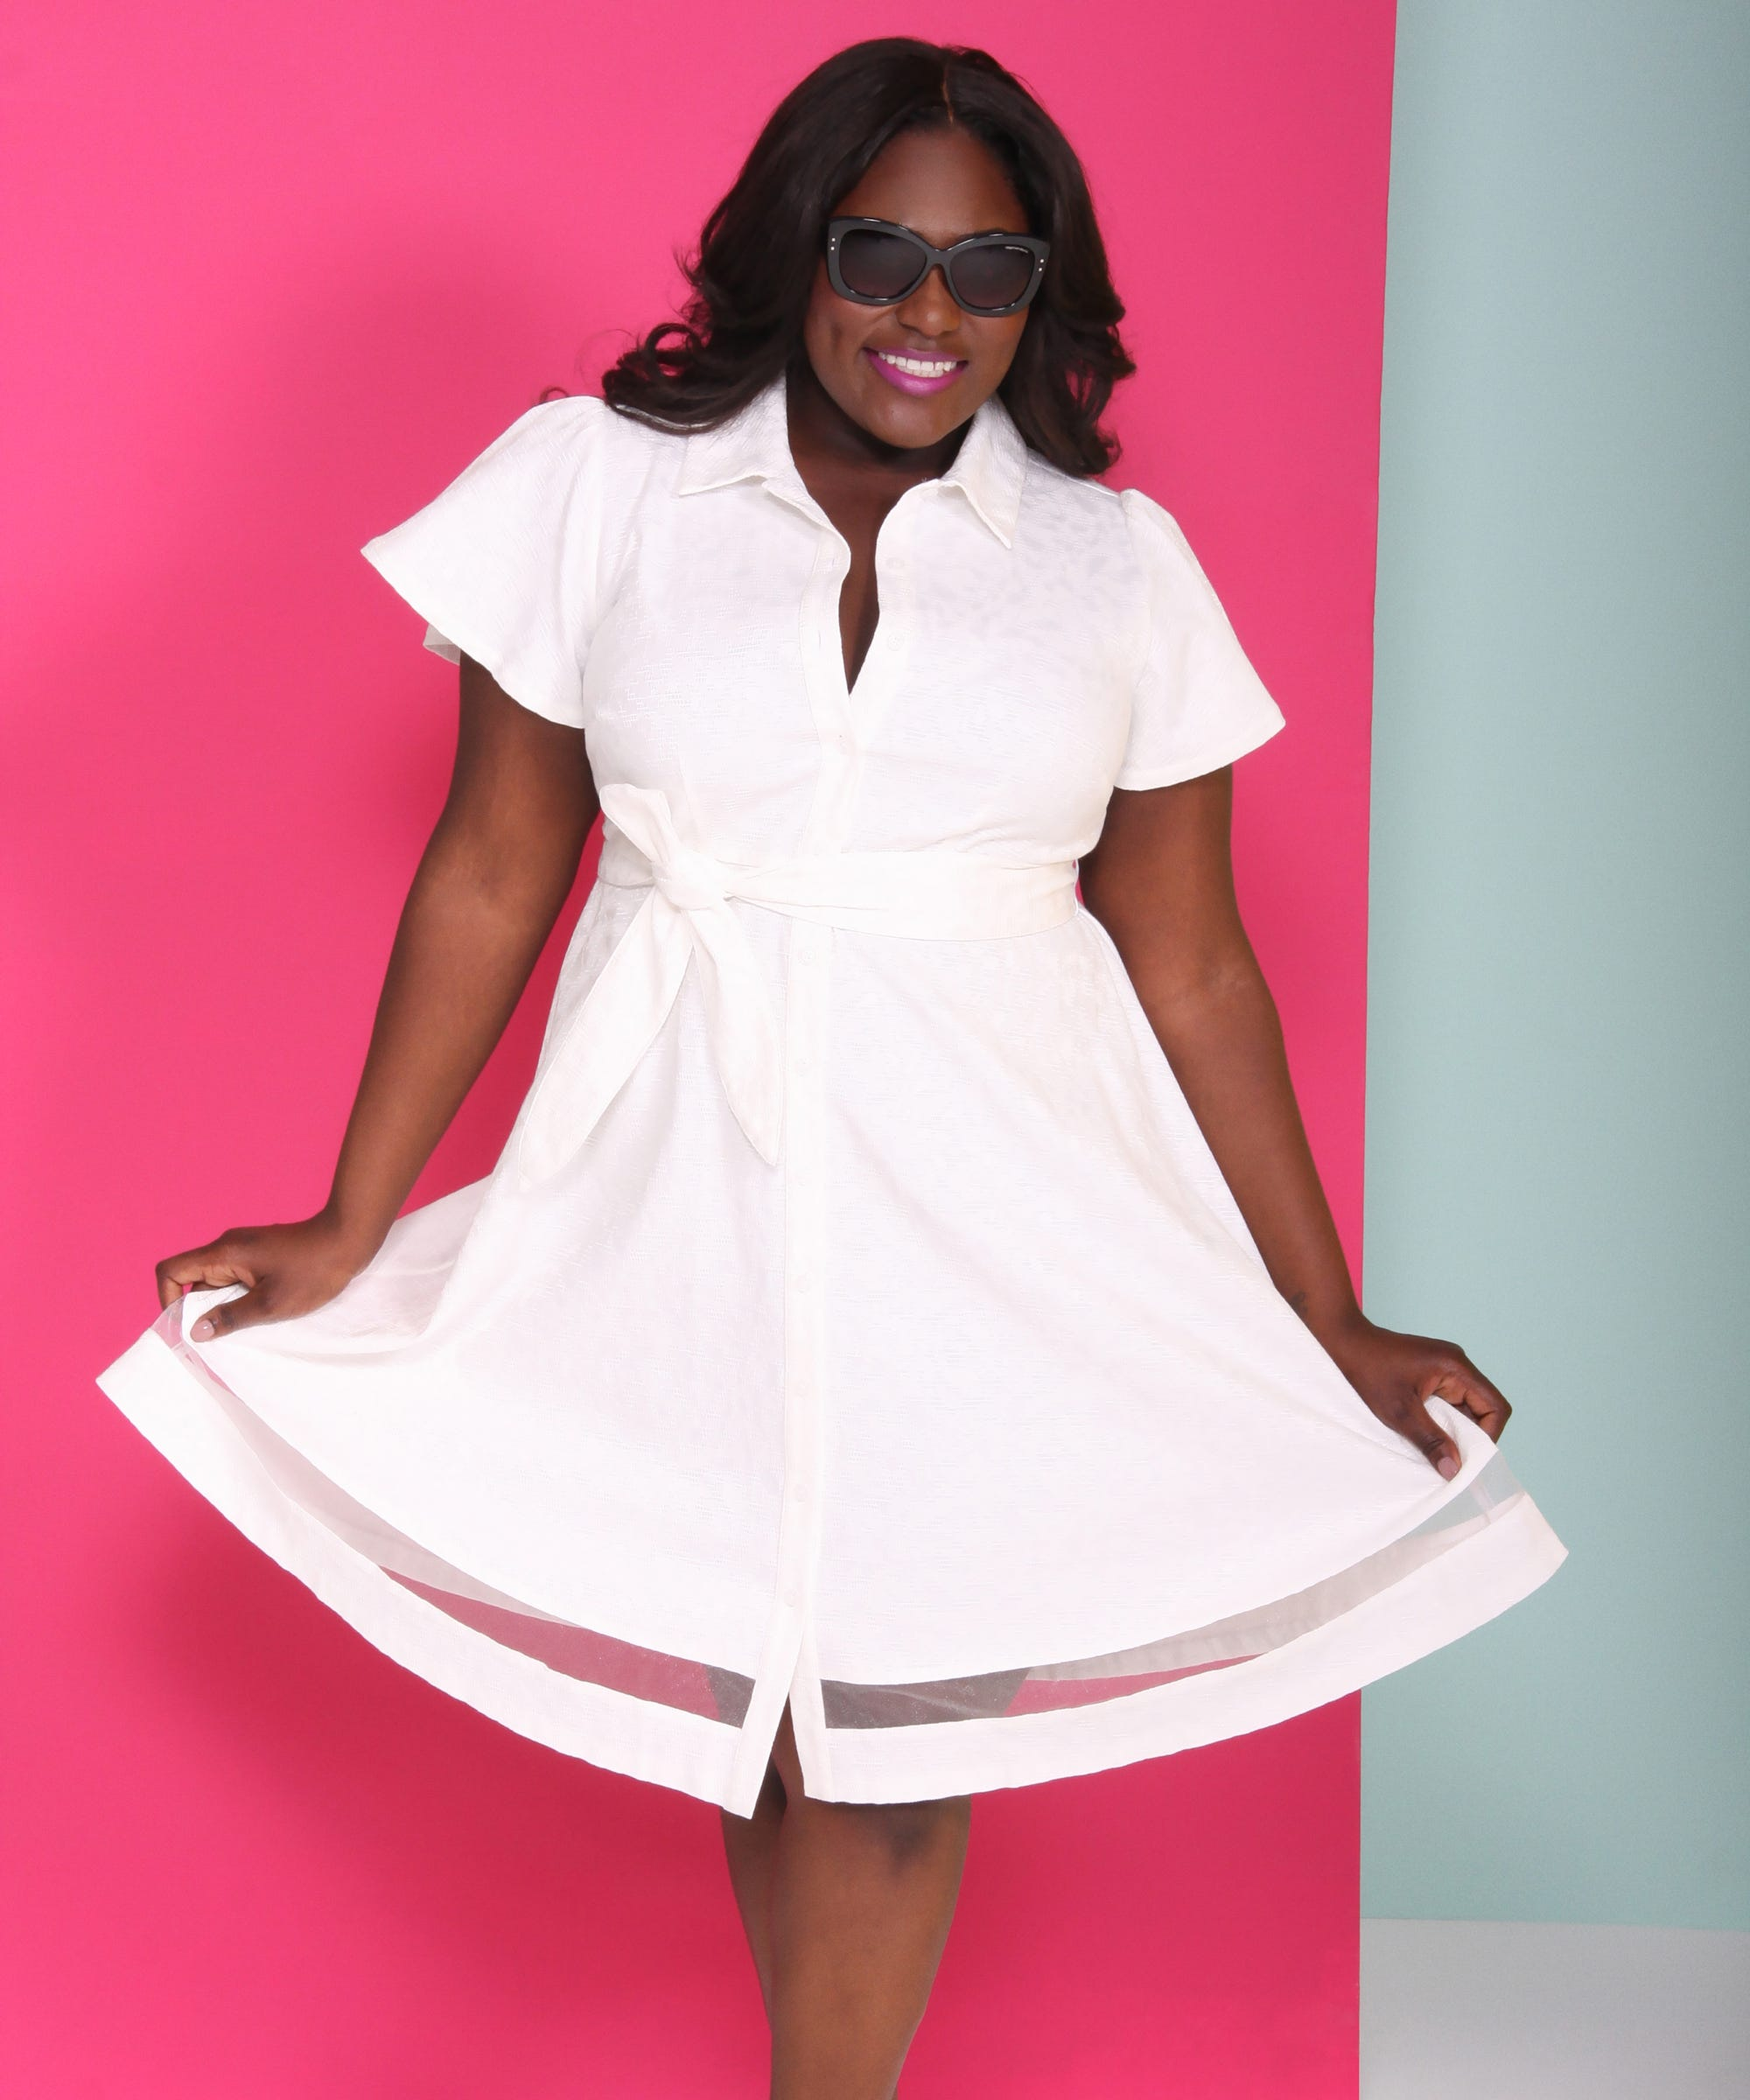 e0b63086d24 Lane Bryant Christian Siriano Plus Size Collaboration